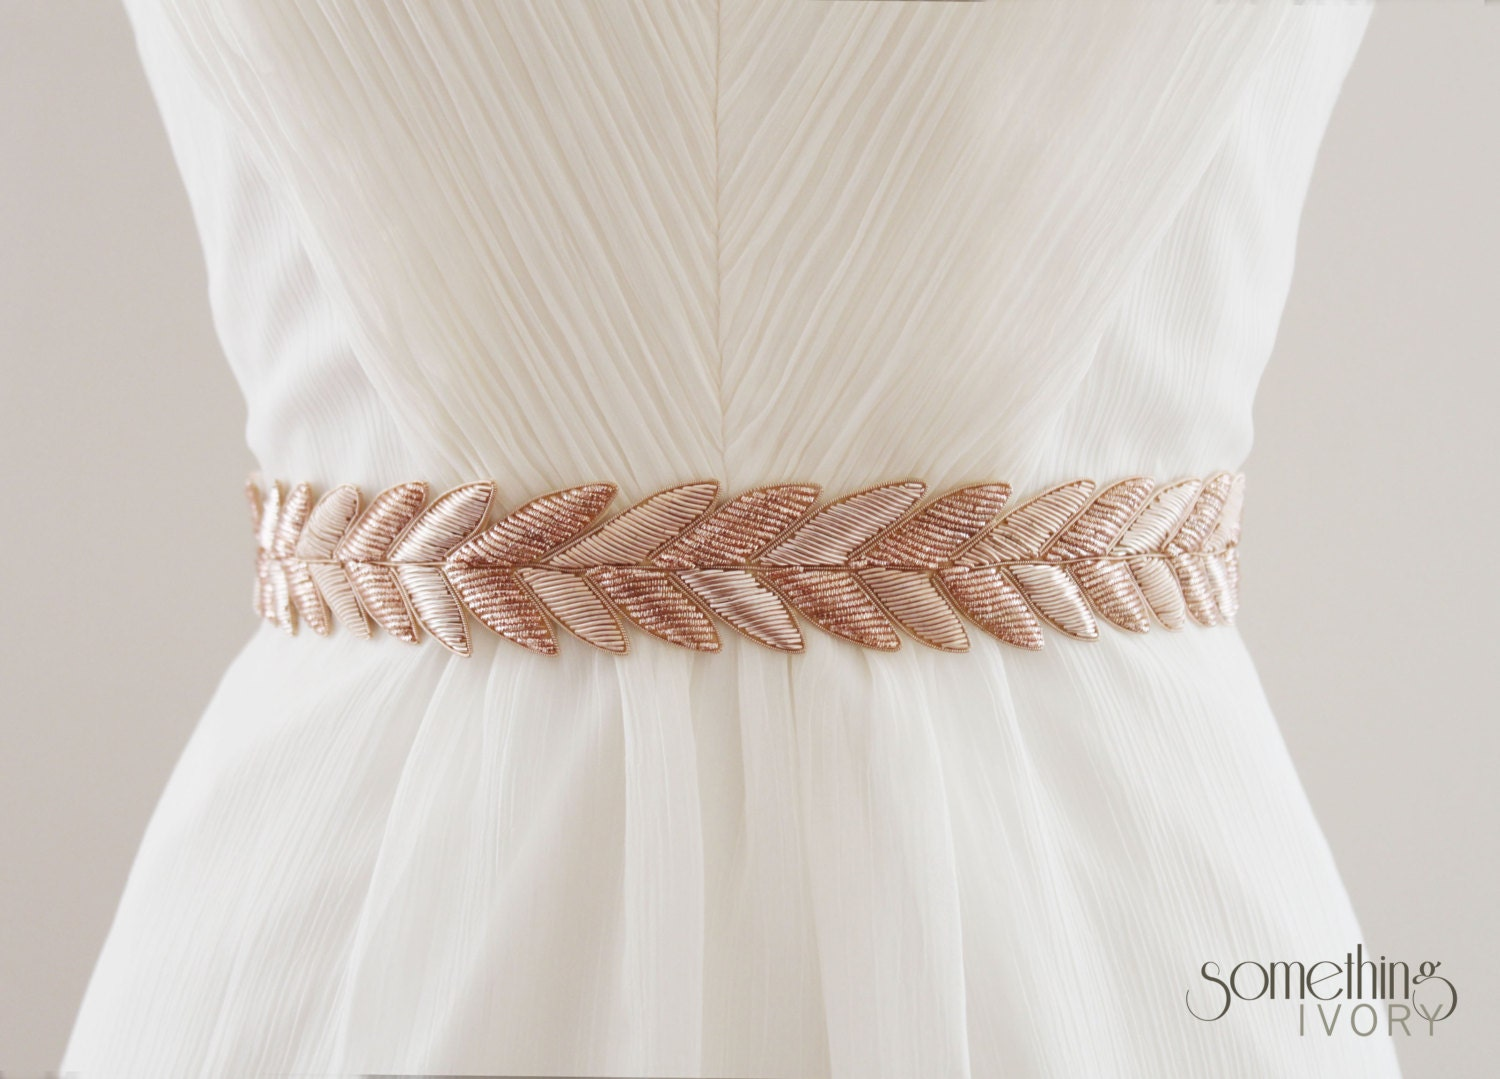 embroidered sash wedding sash HANABI in Rose Gold Metallic Bullion Embroidered Bridal Belt Wedding Sash